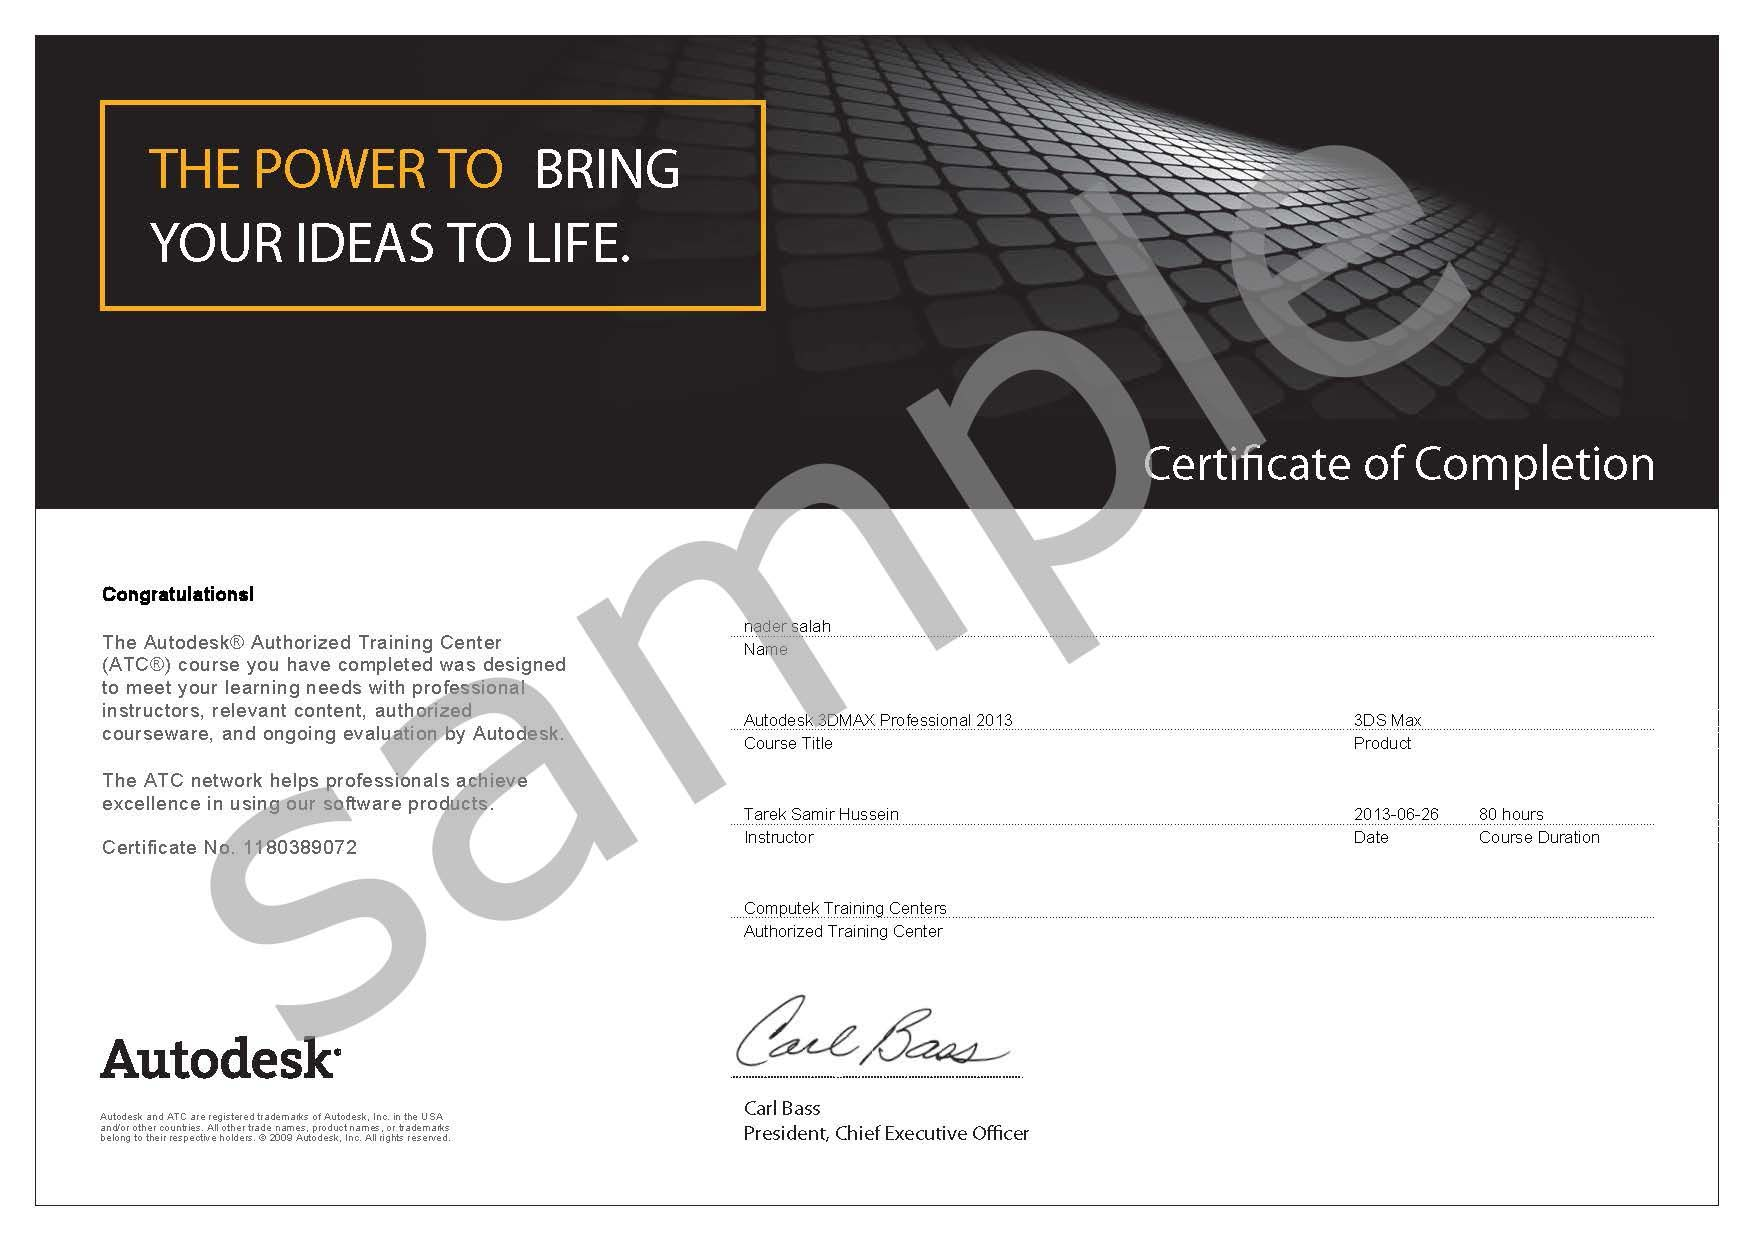 Autodesk certificate of completion sample certs cad pinterest autodesk certificate of completion 1betcityfo Image collections